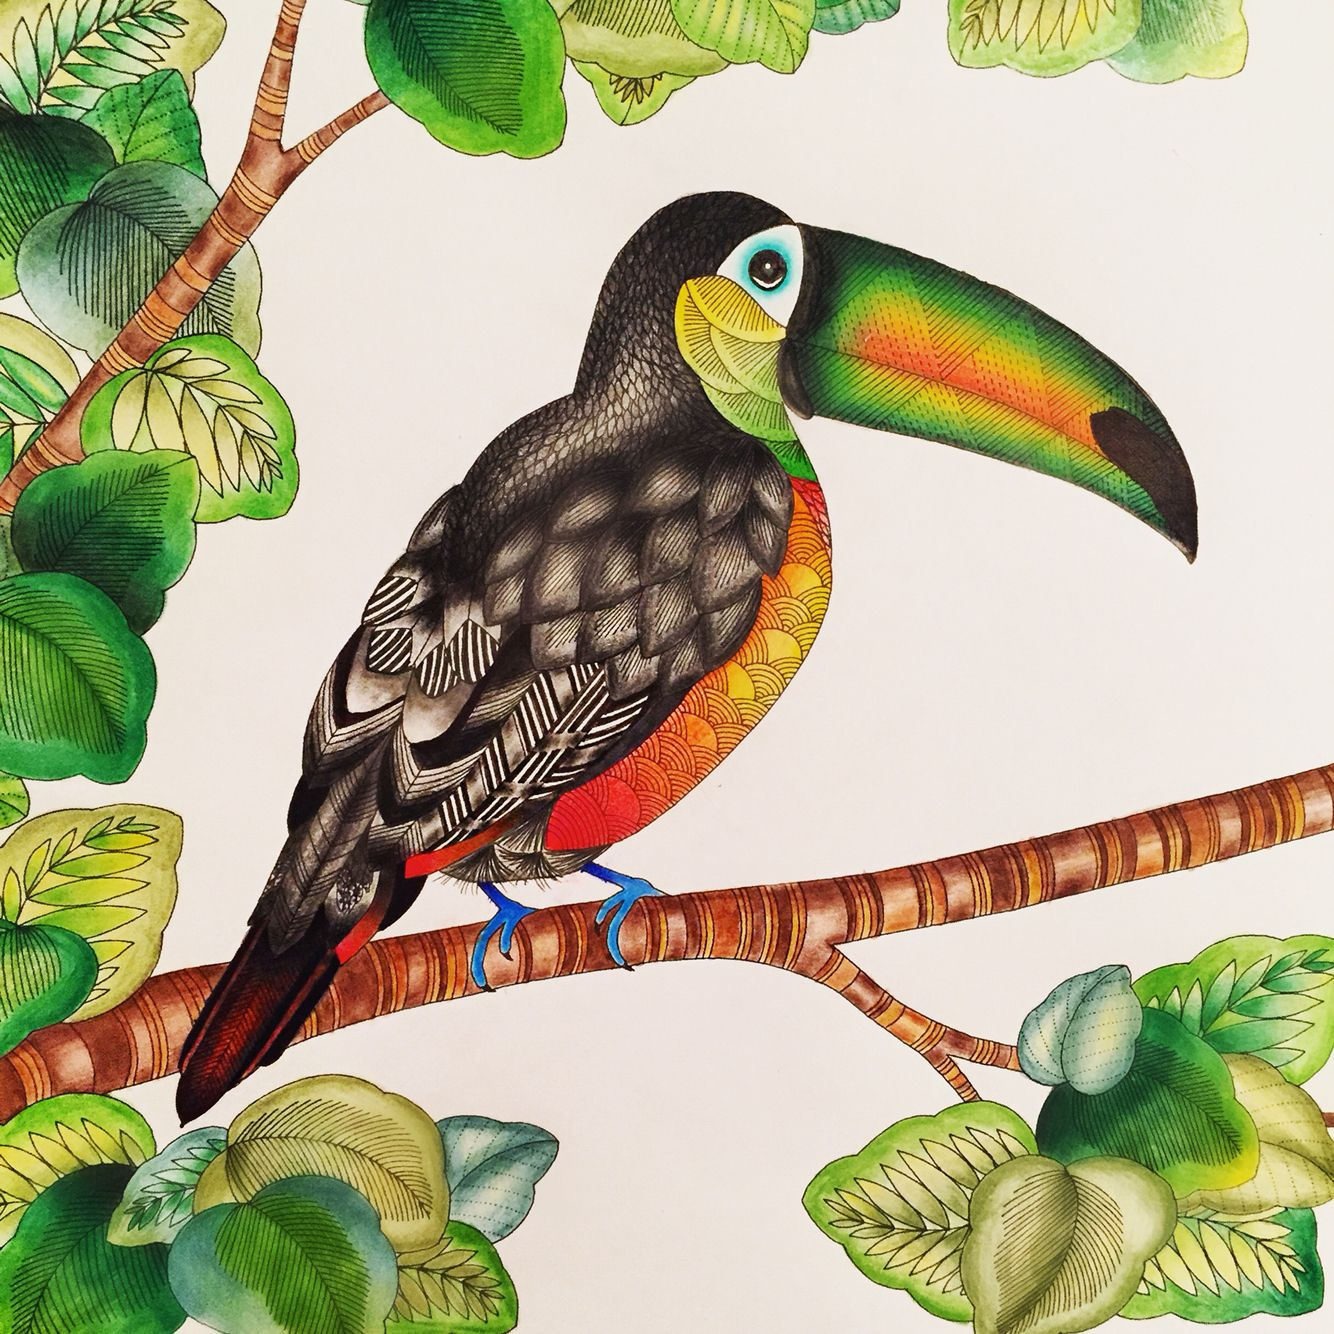 Toucan From The Millie Marotta Animal Kingdom Colouring Book Meesharose Milliemarotta Animalkingdom